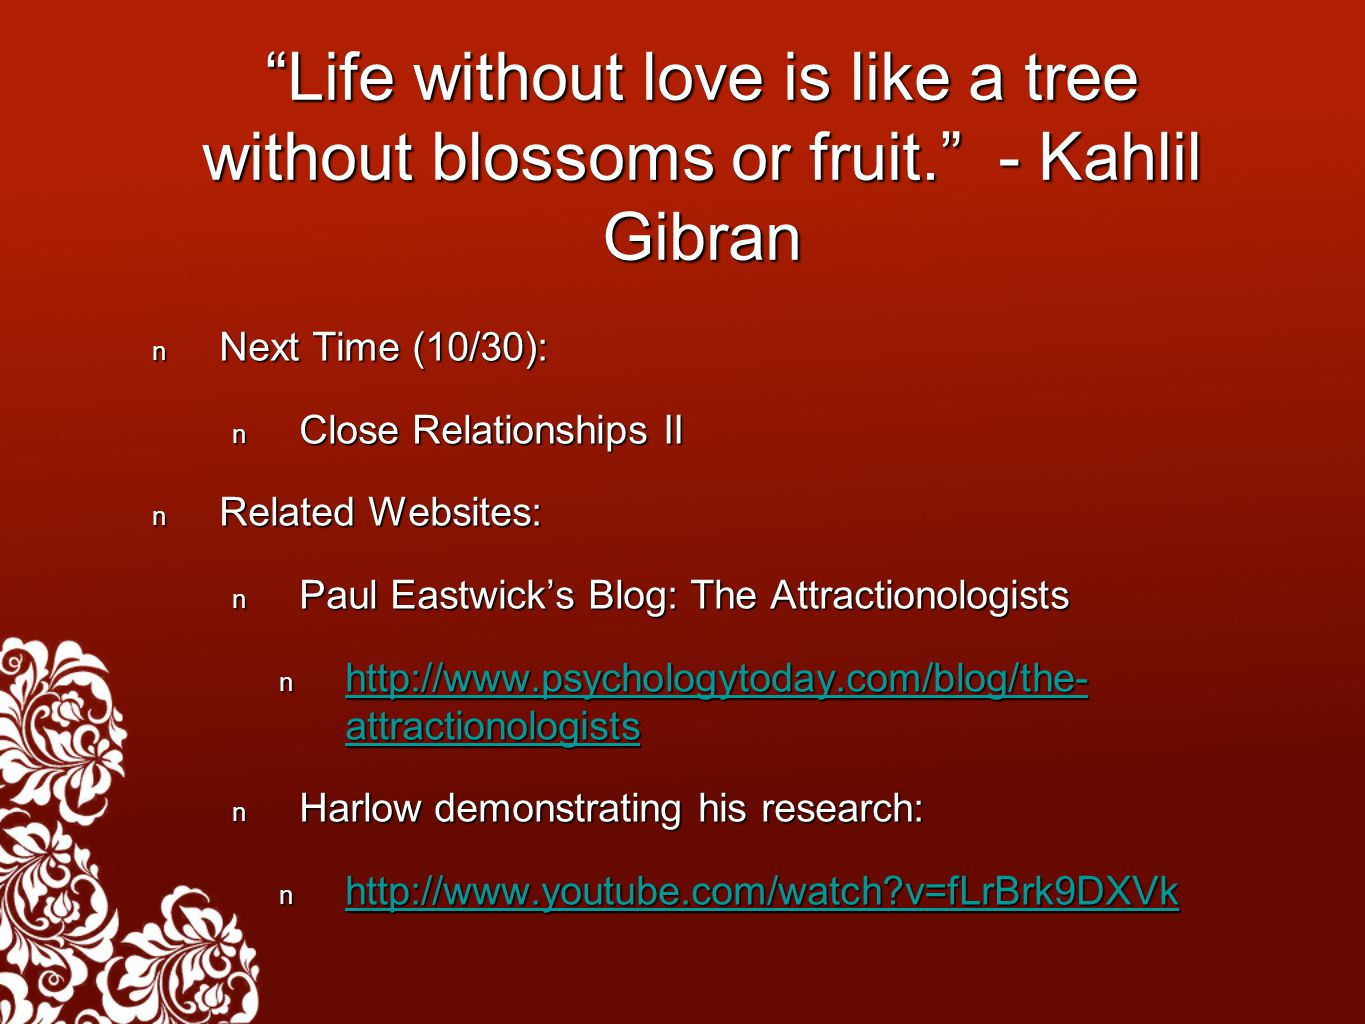 Life without love is like a tree without blossoms or fruit. - Kahlil Gibran Next Time (10/30): Next Time (10/30): Close Relationships II Close Relationships II Related Websites: Related Websites: Paul Eastwick's Blog: The Attractionologists Paul Eastwick's Blog: The Attractionologists http://www.psychologytoday.com/blog/the- attractionologists http://www.psychologytoday.com/blog/the- attractionologists http://www.psychologytoday.com/blog/the- attractionologists http://www.psychologytoday.com/blog/the- attractionologists Harlow demonstrating his research: Harlow demonstrating his research: http://www.youtube.com/watch v=fLrBrk9DXVk http://www.youtube.com/watch v=fLrBrk9DXVk http://www.youtube.com/watch v=fLrBrk9DXVk